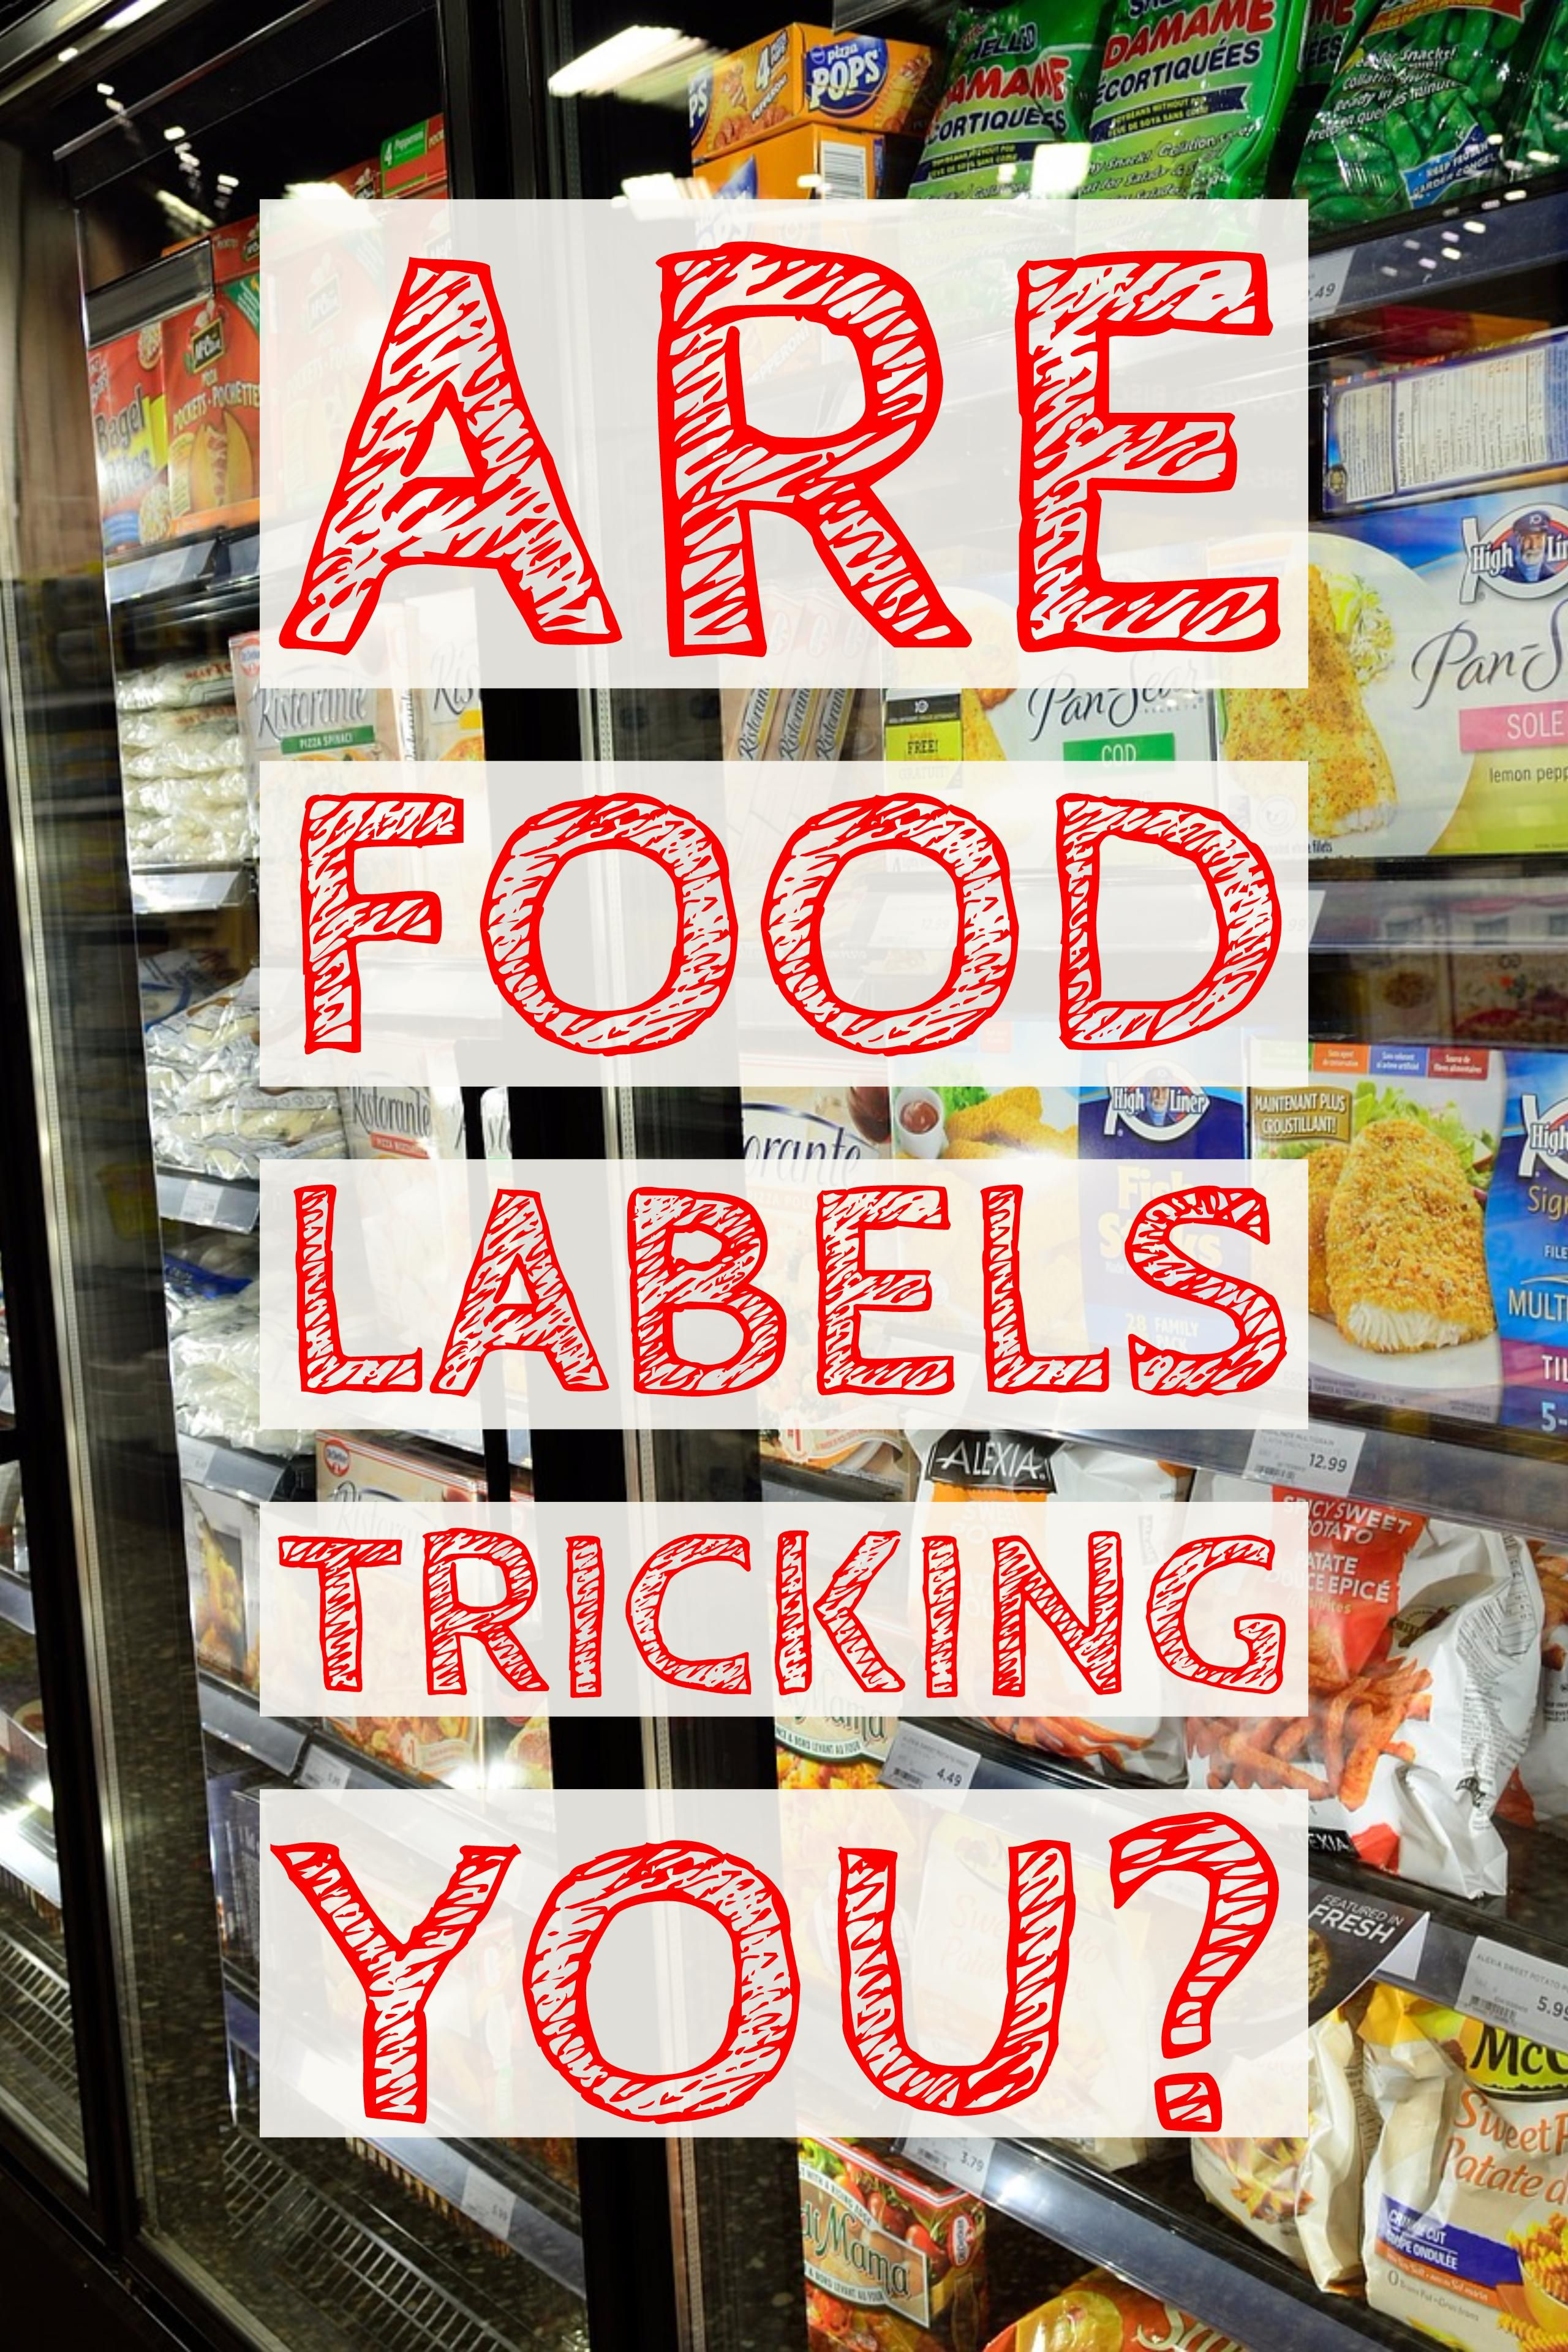 How Label Lingo Tricks You Into Making Bad Food Choices